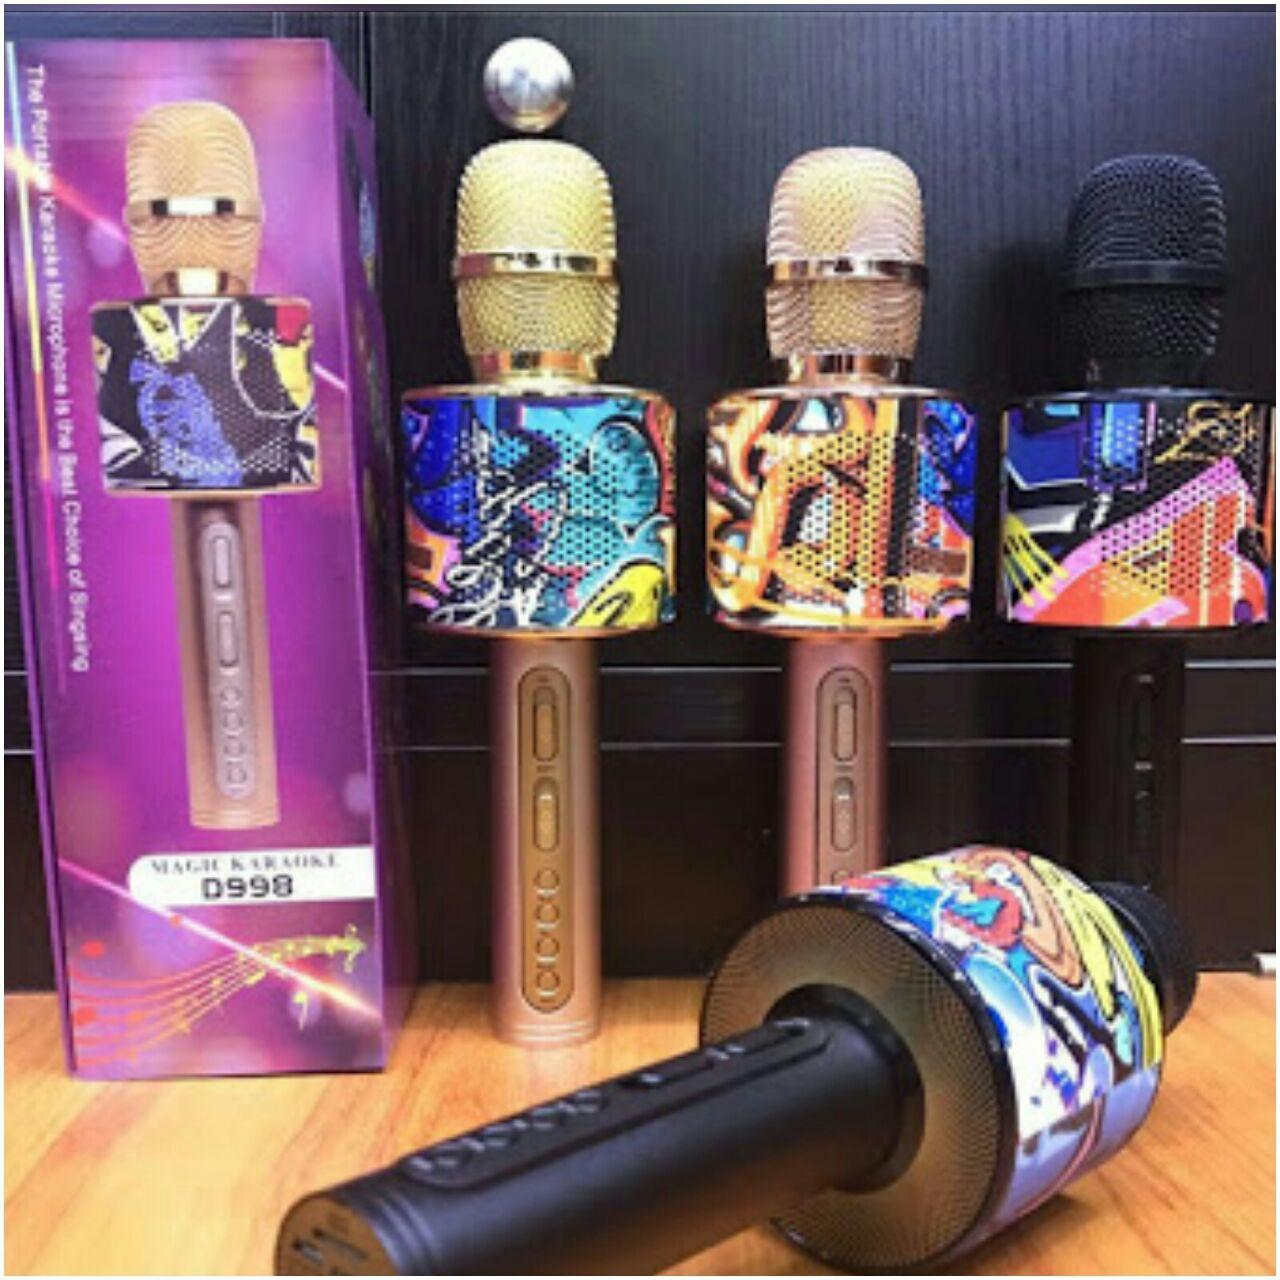 Buy Sell Cheapest Mic Wster Original Best Quality Product Deals Bluetooth Karaoke Smule Ws 858 Wireless Microphon D998 Random Colour